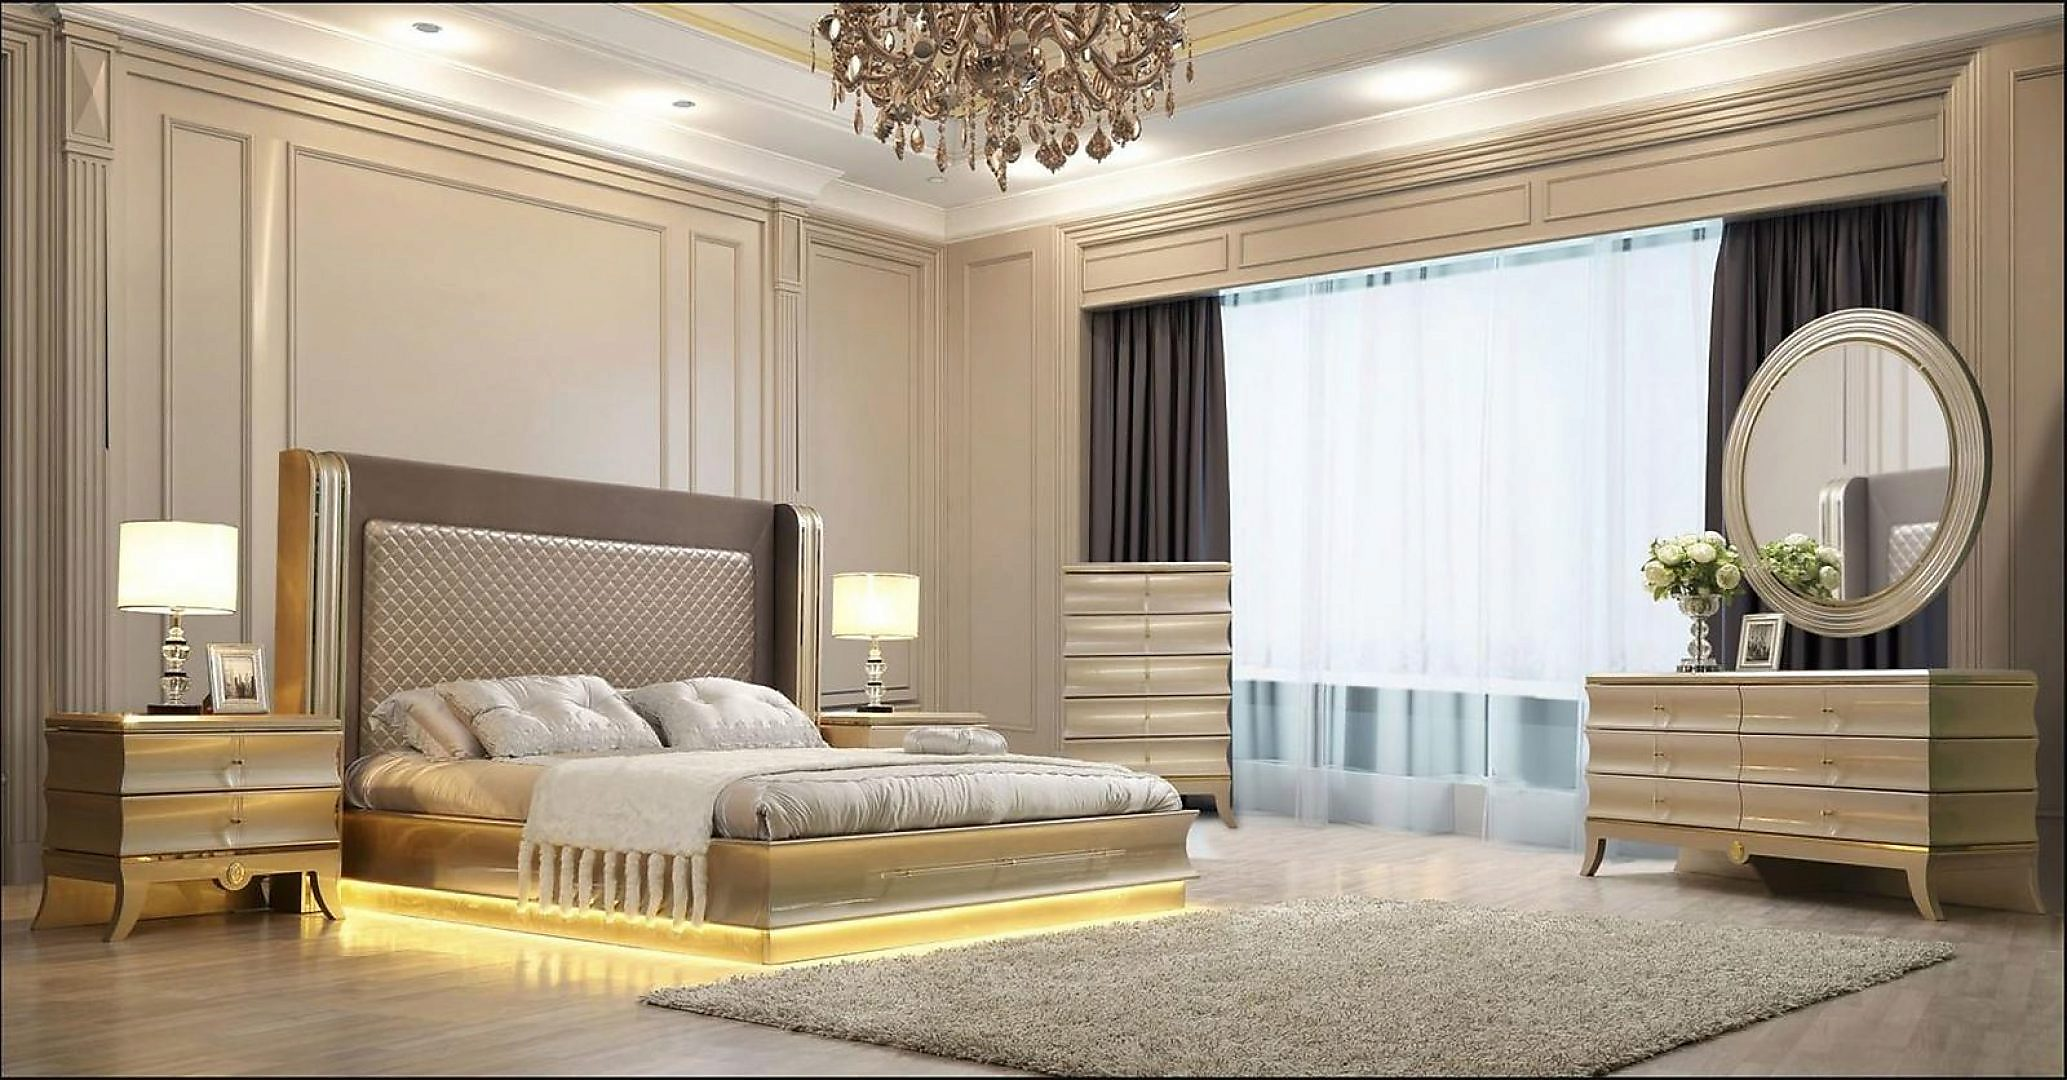 Glam Belle Silver & Gold KING Bedroom Set 3Psc HD-925 Homey Design Contemporary